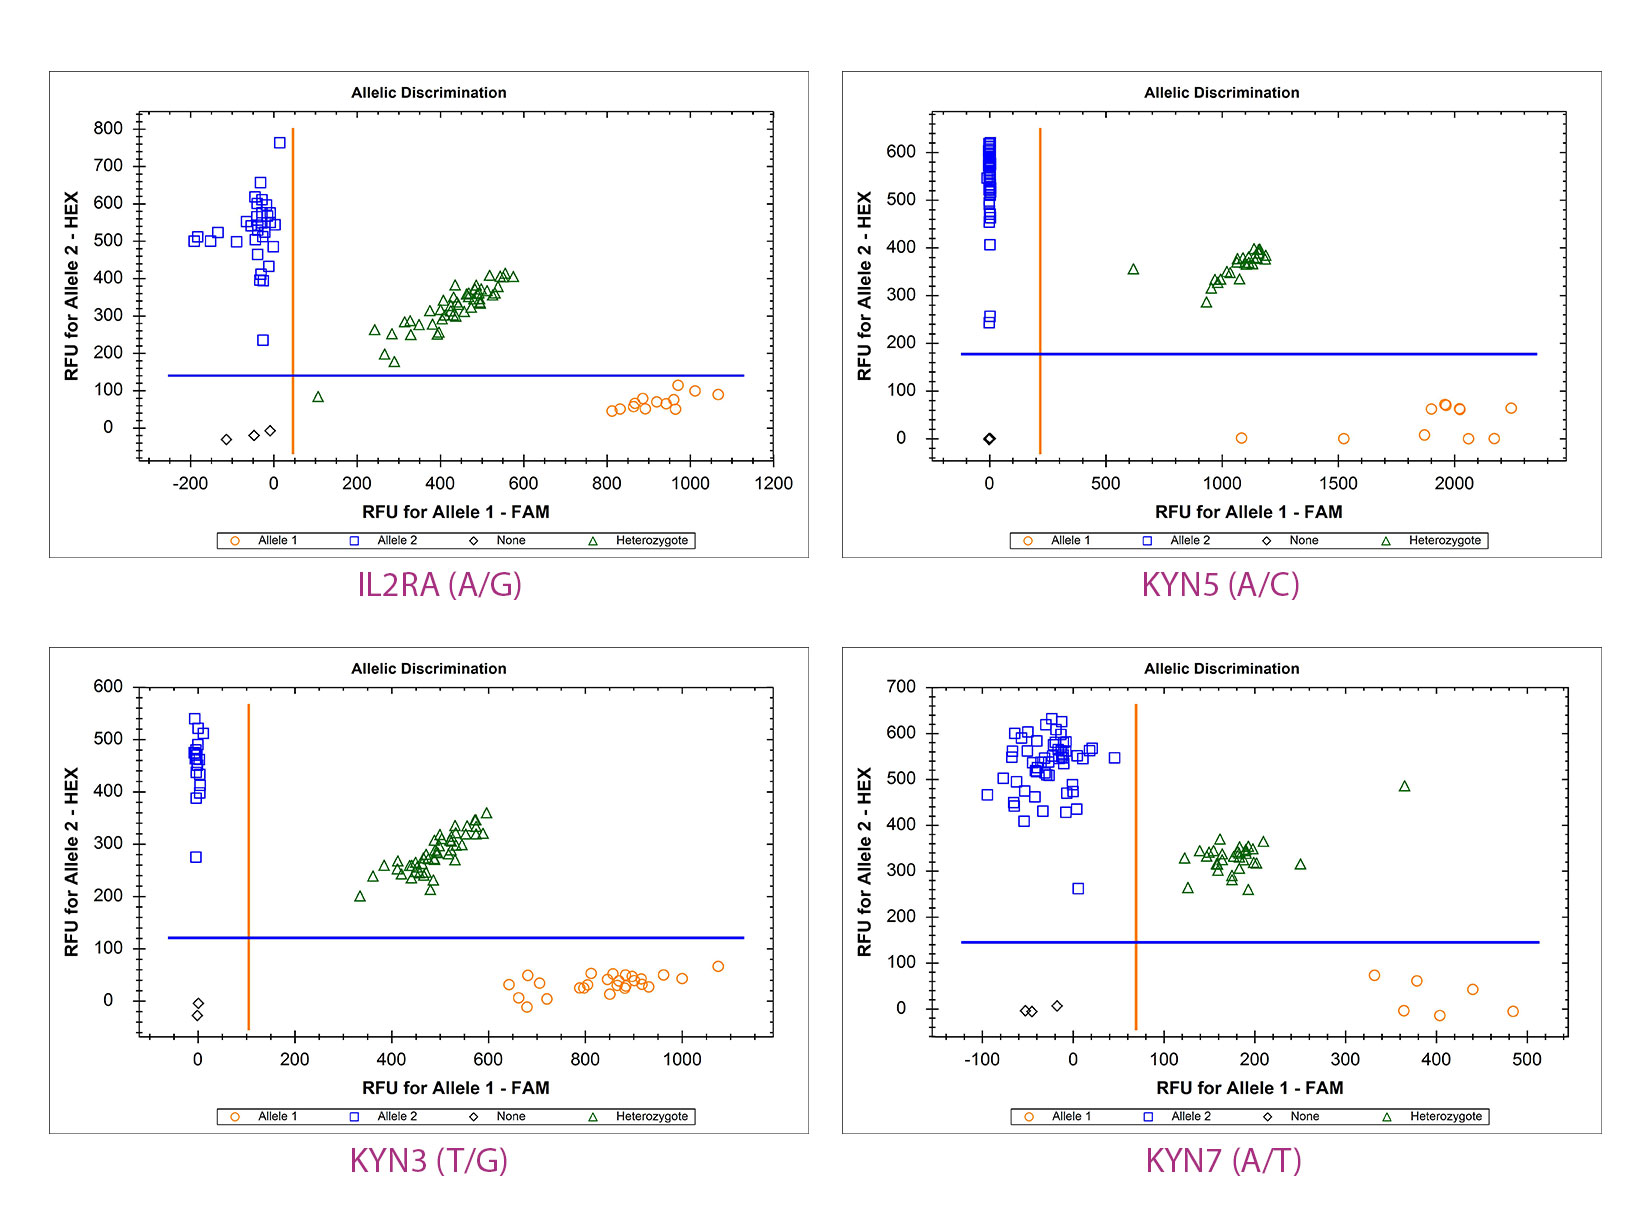 Data image showing analysis of 4 single nucleotide polymorphisms using qPCRBIO Genotyping Mix and TaqMan probes.